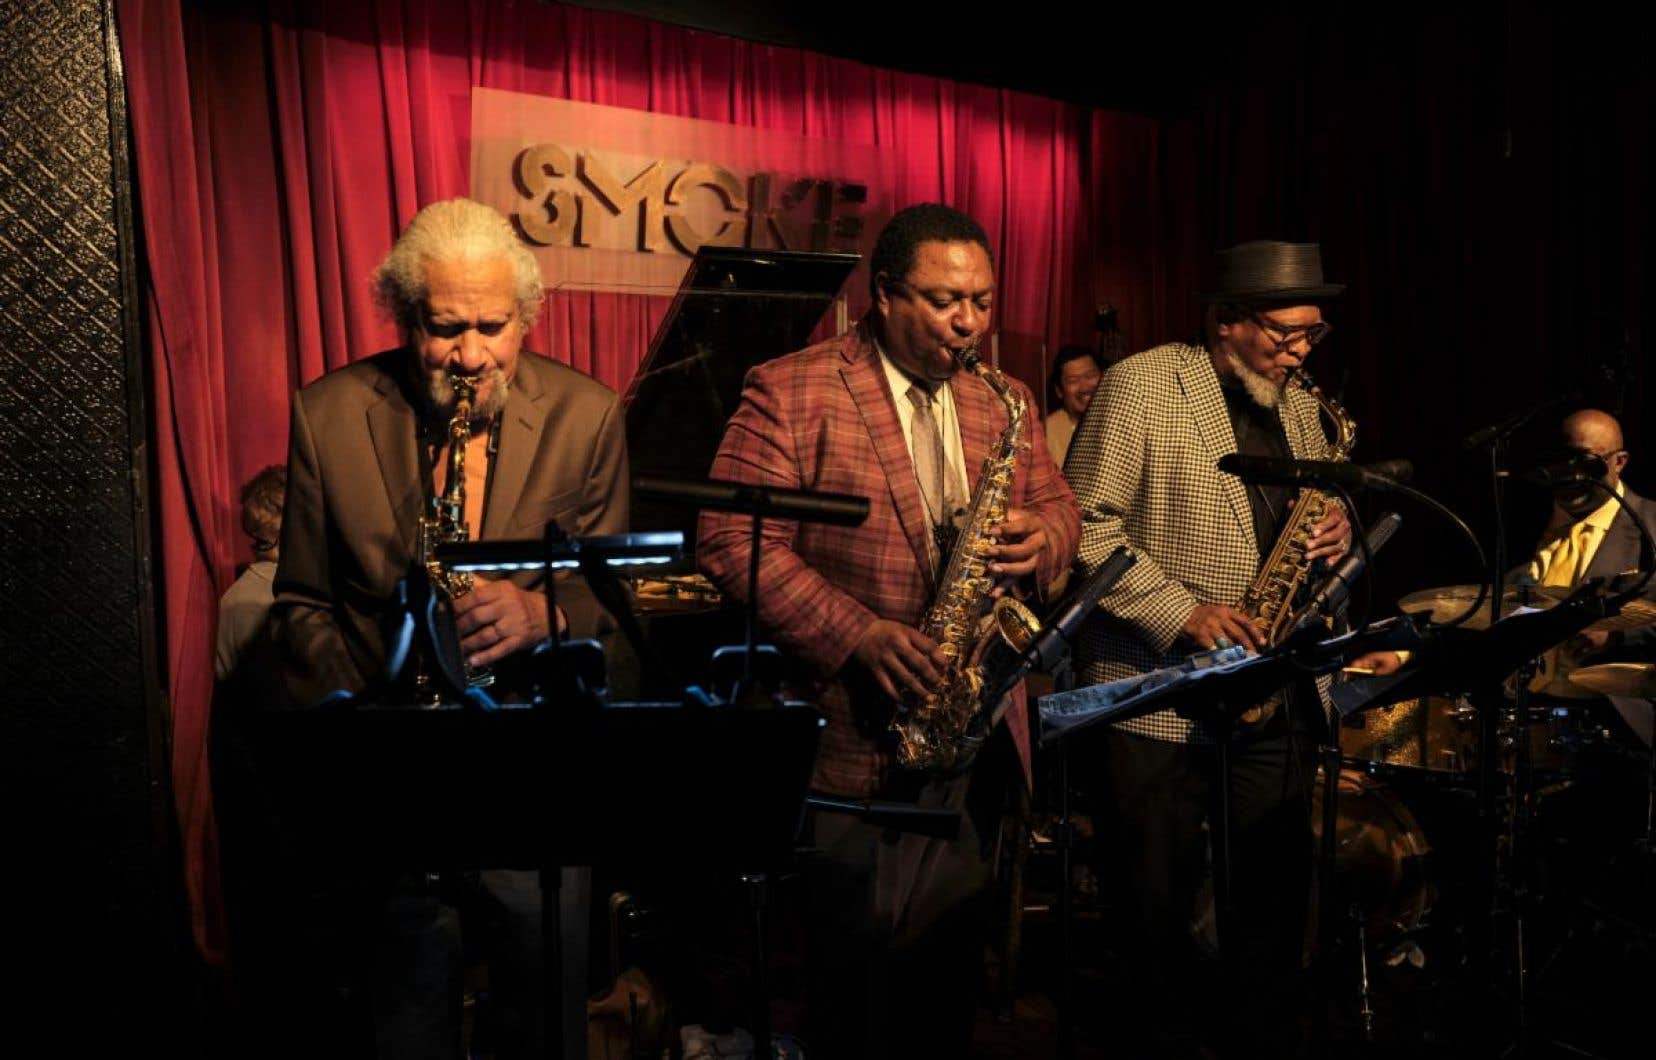 «Bird at 100», qui réunit Bobby Watson, Gary Bartz et Vincent Herring, a été enregistré au club new-yorkais Smoke.